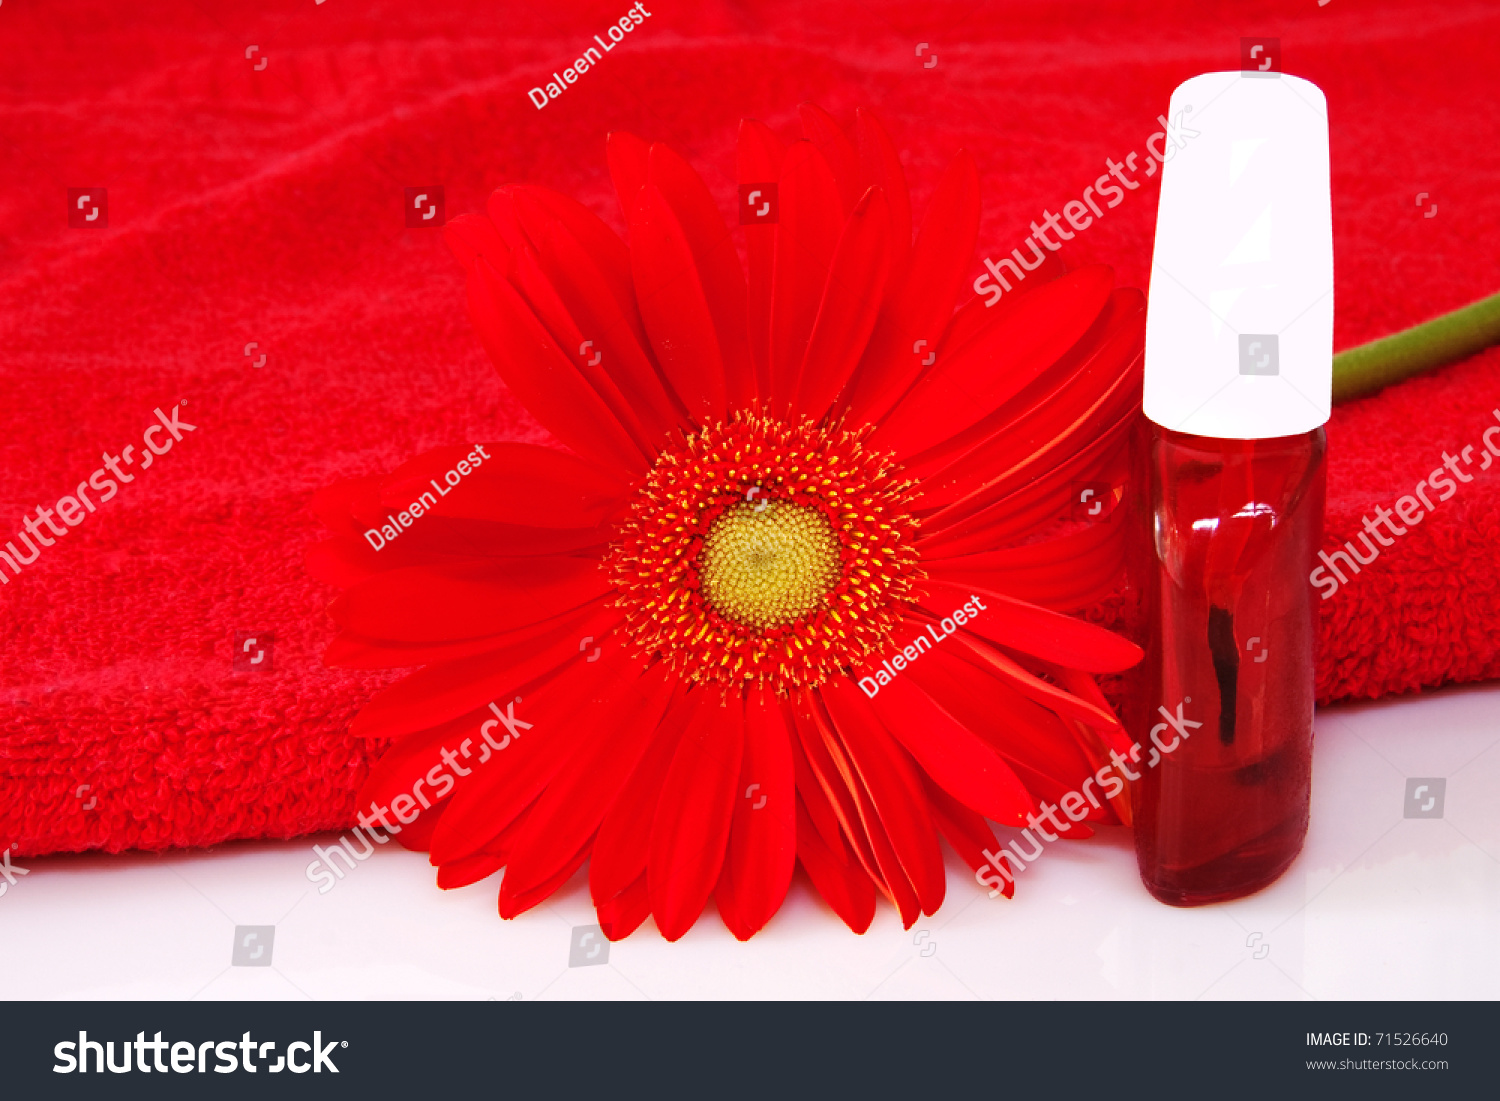 Nail Care Product Bottles Red Gerbera Stock Photo Royalty Free